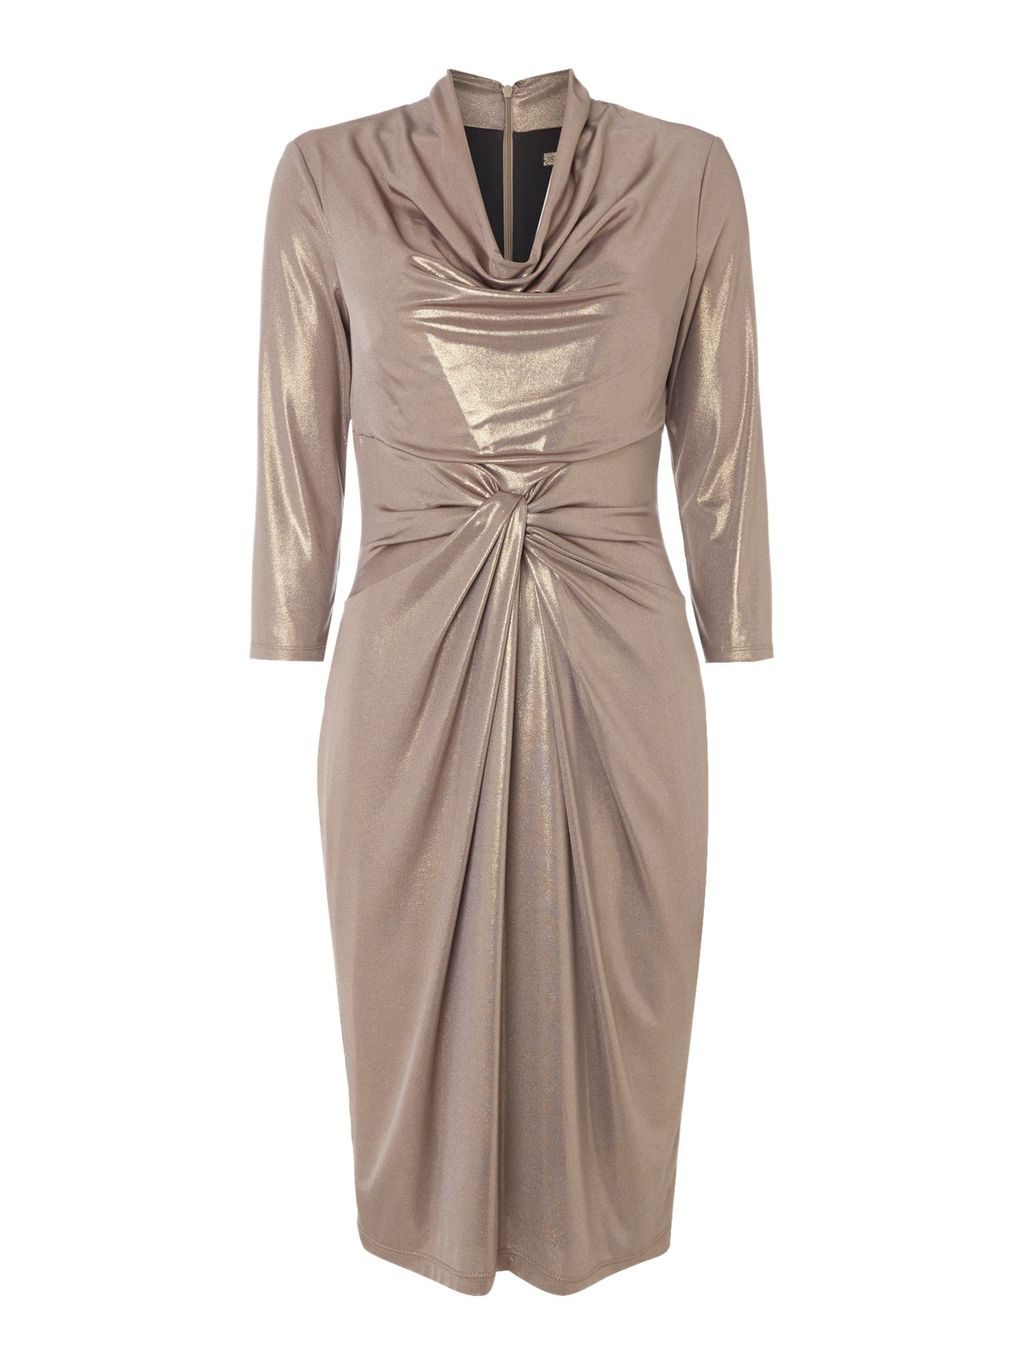 Cowl Neck Long Sleeve Metallic Jersey Dress, Gold - style: shift; neckline: cowl/draped neck; pattern: plain; predominant colour: champagne; occasions: evening; length: on the knee; fit: body skimming; fibres: polyester/polyamide - stretch; sleeve length: 3/4 length; sleeve style: standard; pattern type: fabric; texture group: jersey - stretchy/drapey; season: a/w 2016; wardrobe: event